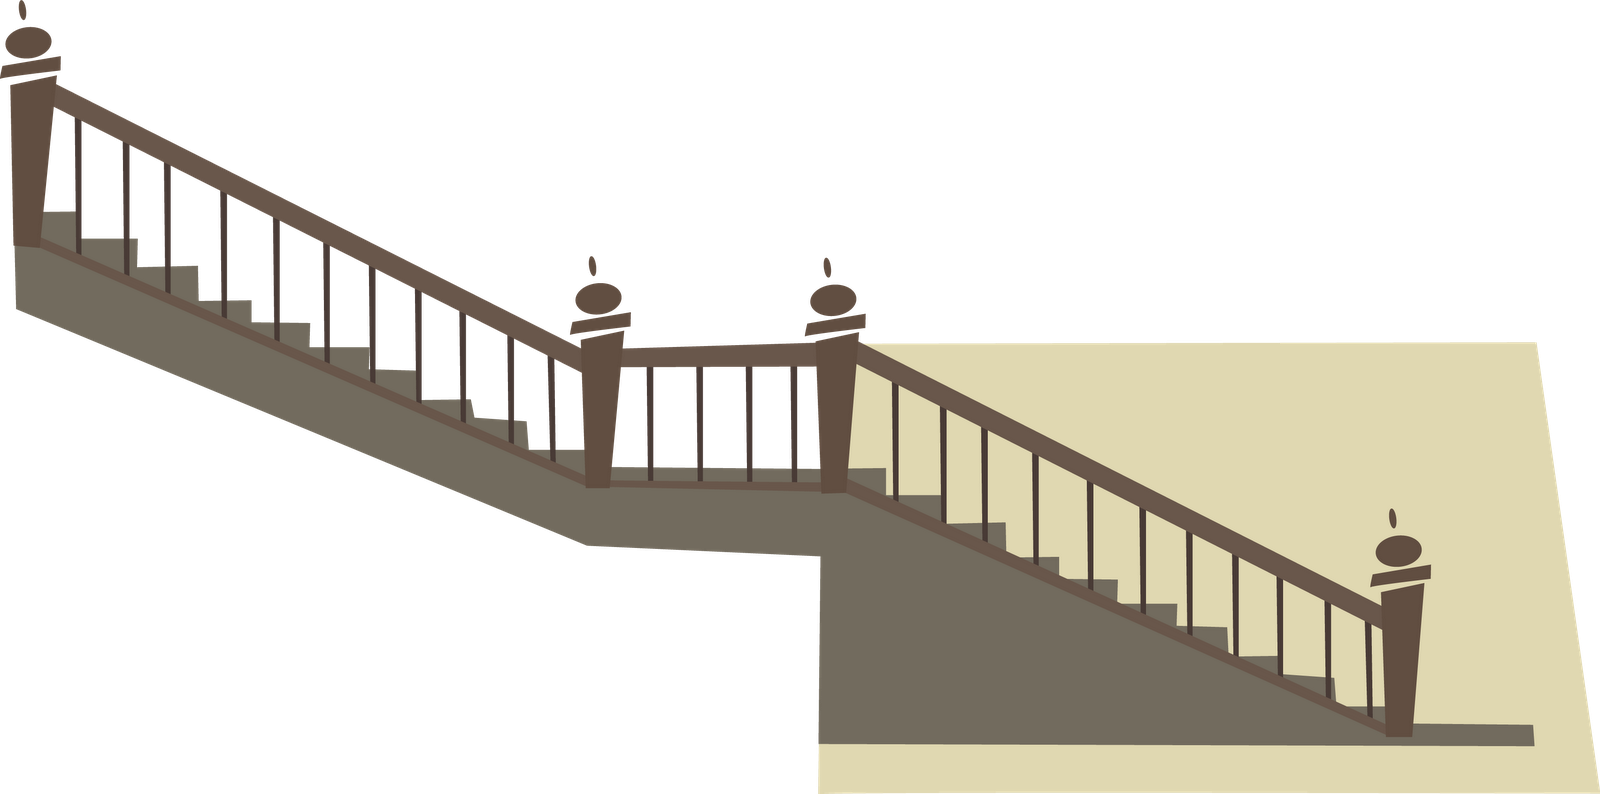 Staircase clipart house. My first storybook